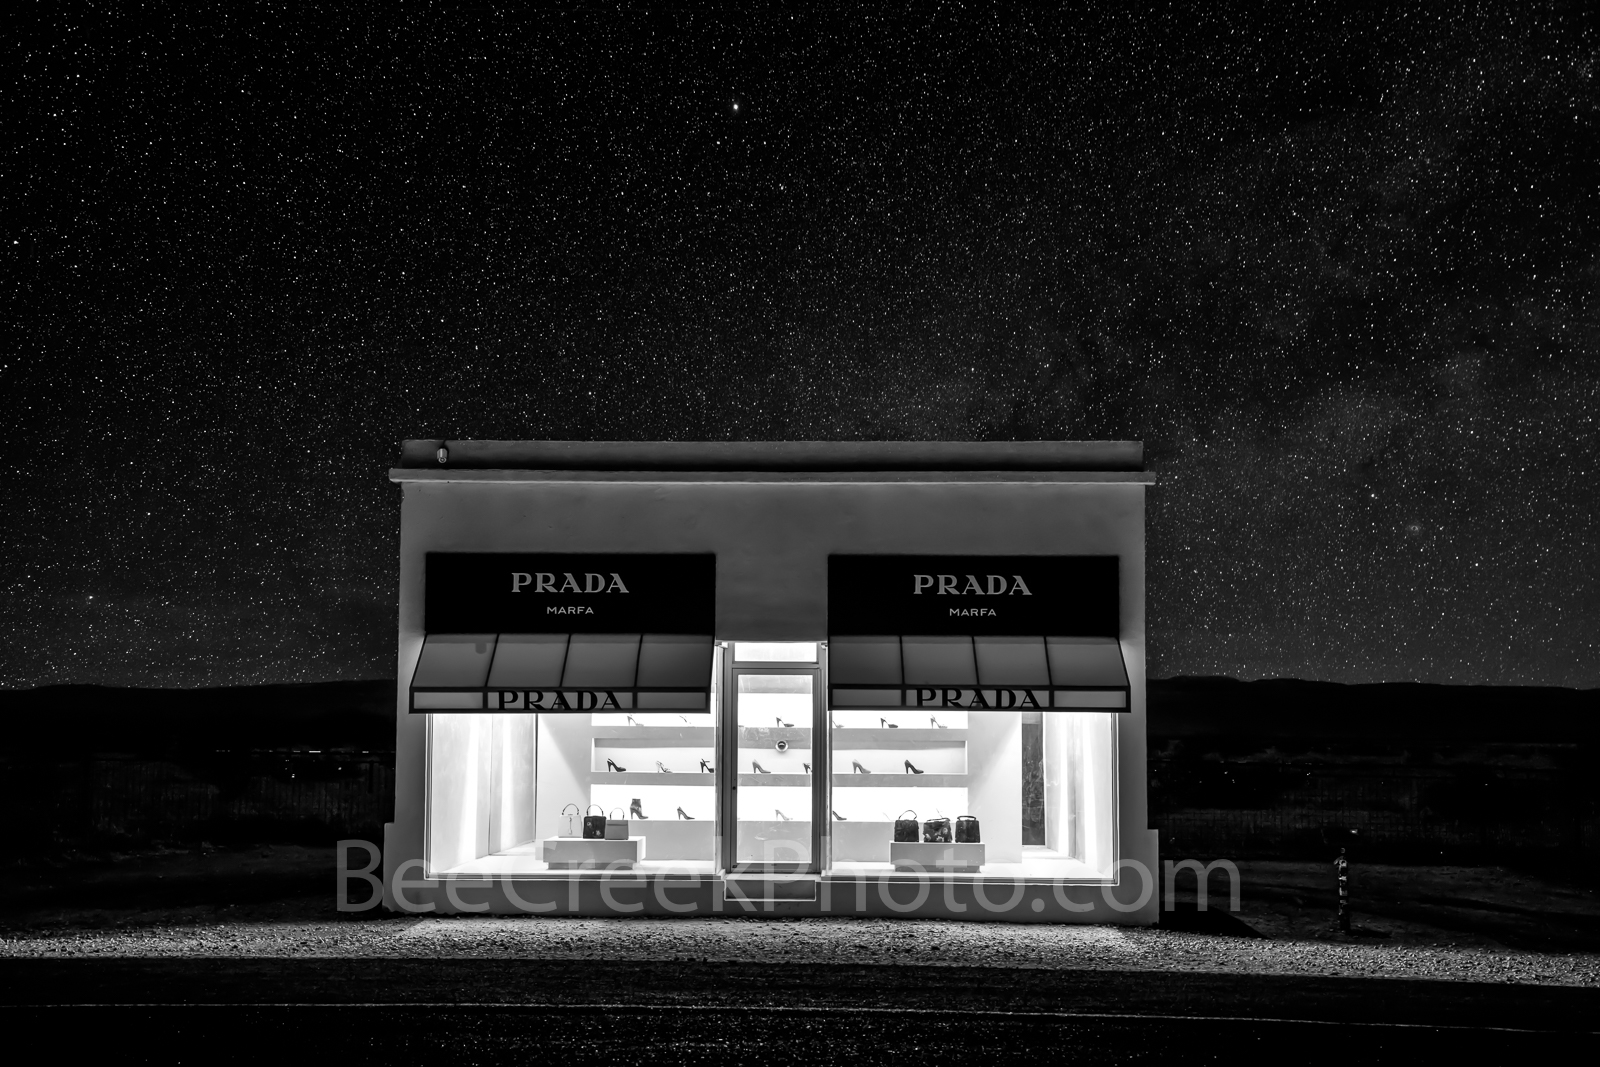 Prada Marfa, stars, black and white, BW,  night, dark, Marfa lights, west texas, starry, night skies, pop art, artist, Elmgreen and Dragset, pop architectural land art, shoes, purses, store front, wes, photo